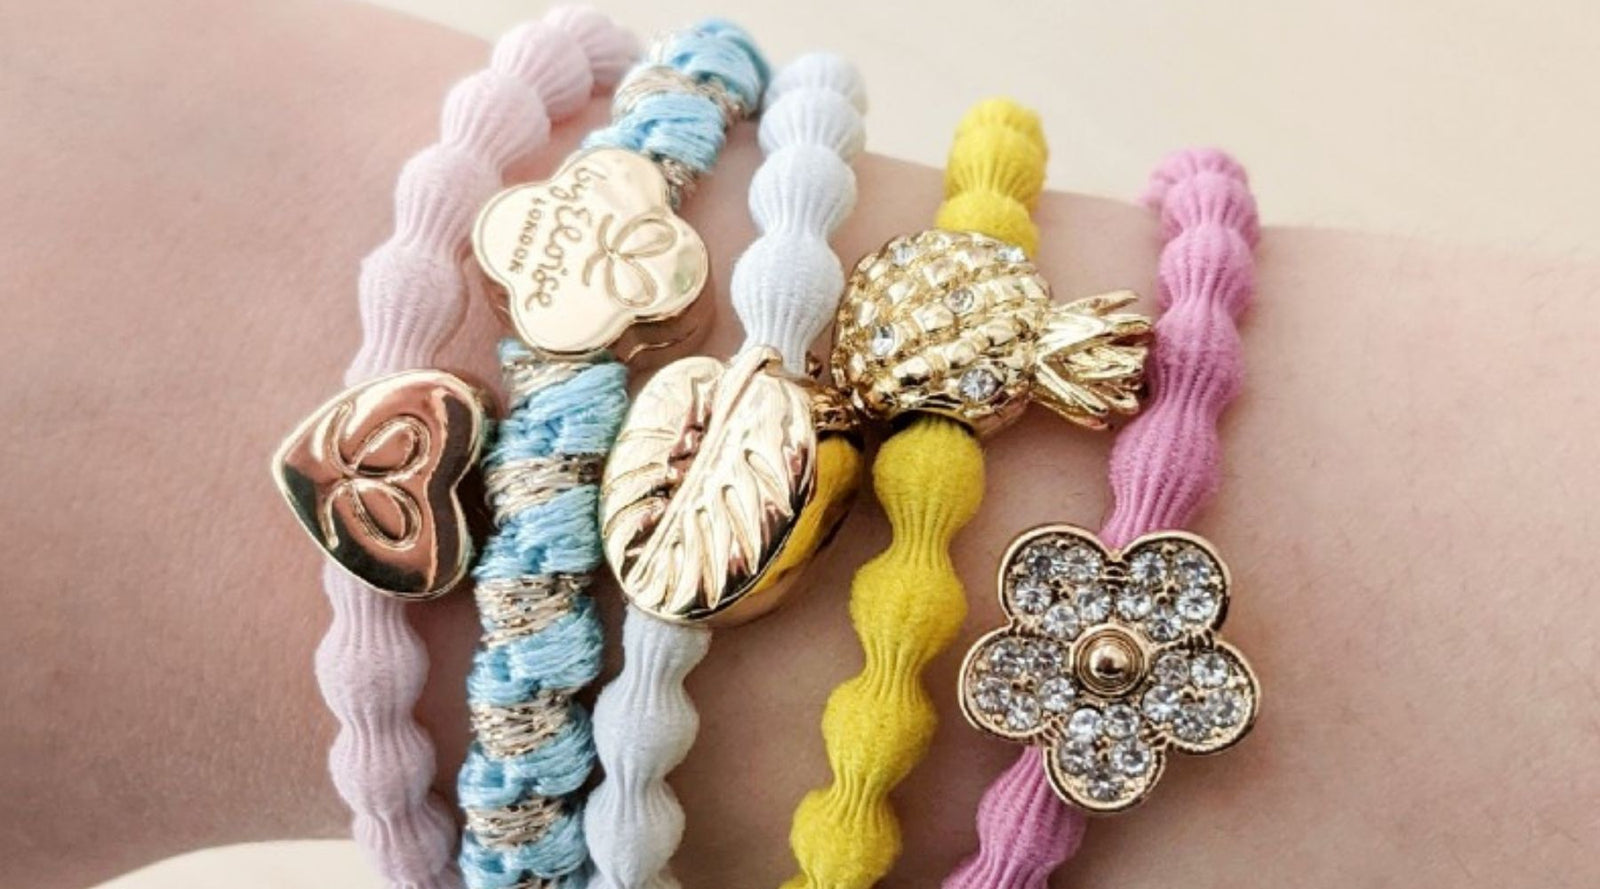 By Eloise Charm Hairbands  Bangle Bands  Strong yet Pretty Hair Ties ... 2210300dd52